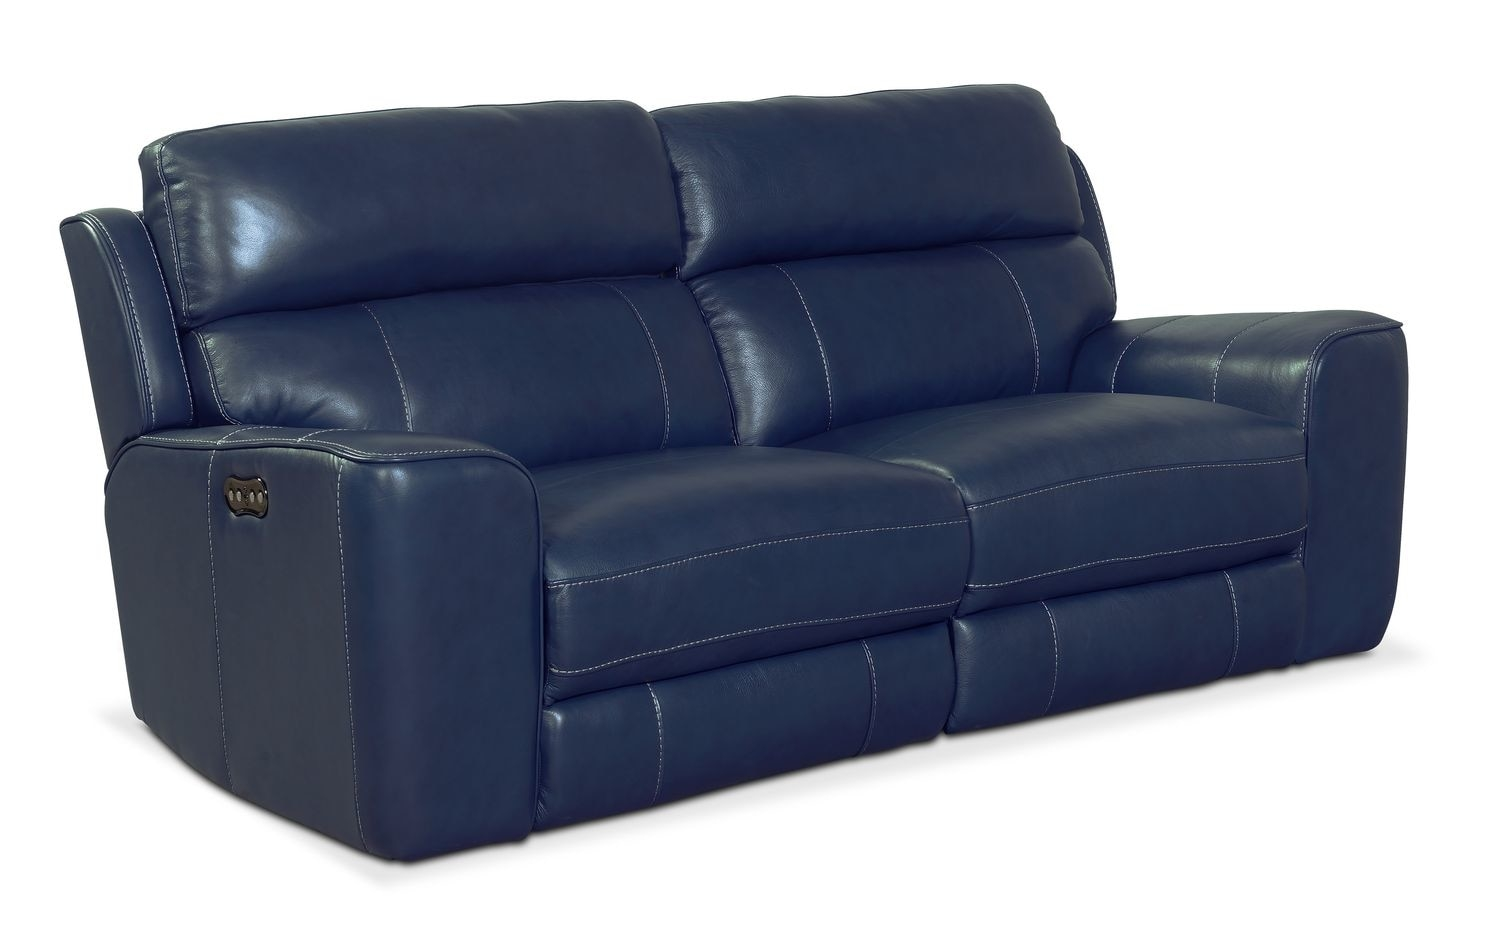 Newport 2 Piece Power Reclining Sofa Blue Value City Furniture Inside Newport Sofas (Image 7 of 15)